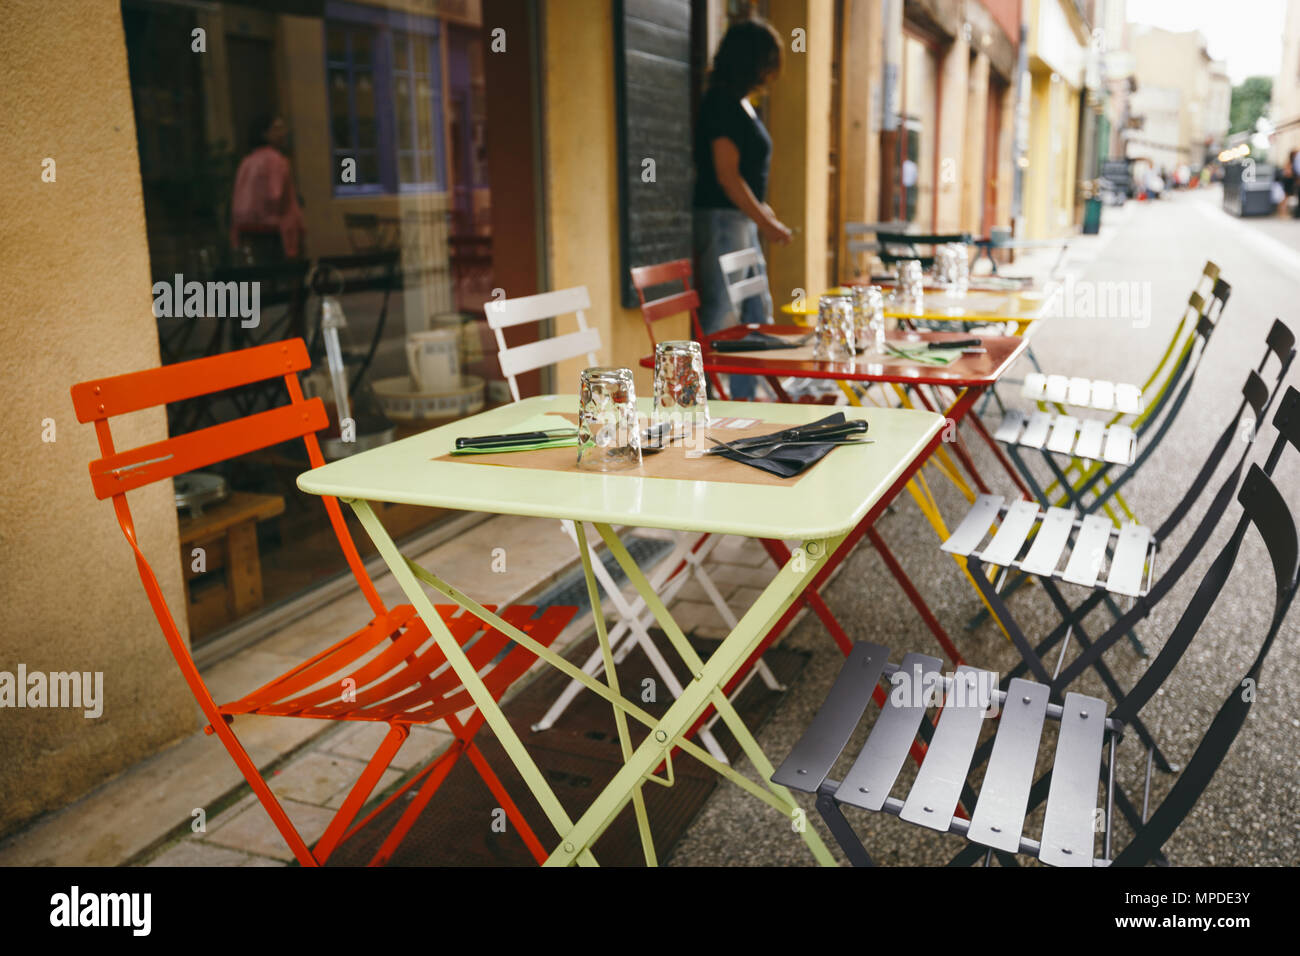 Theme Cafes And Restaurants Exterior Summer Terrace Of Bright Colors Of Street Cafe Shop In Europe In France Preserved Tables Without People At Tab Stock Photo Alamy